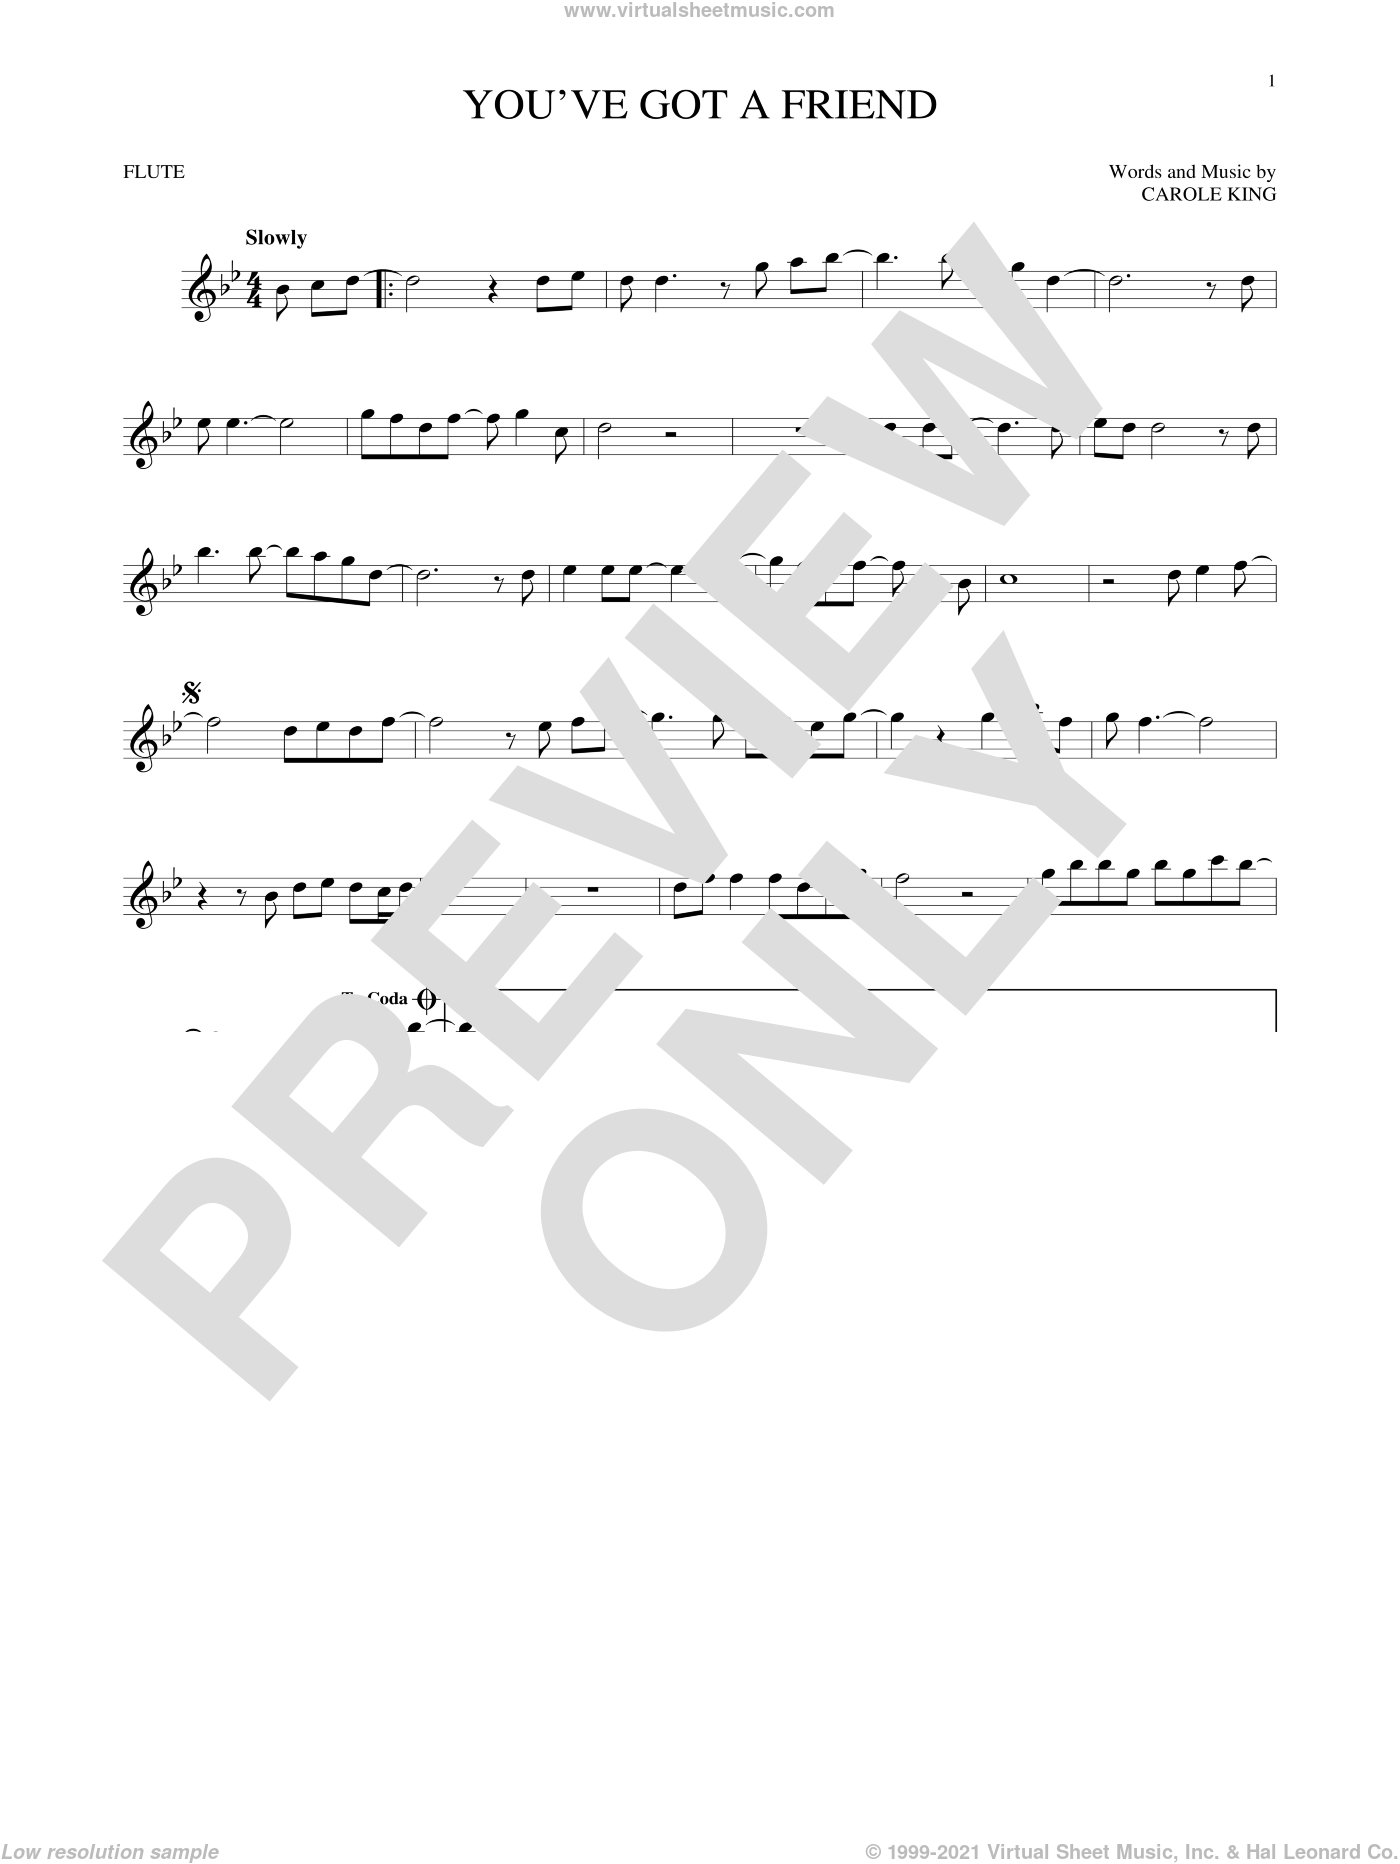 You've Got A Friend sheet music for flute solo by James Taylor and Carole King, intermediate skill level